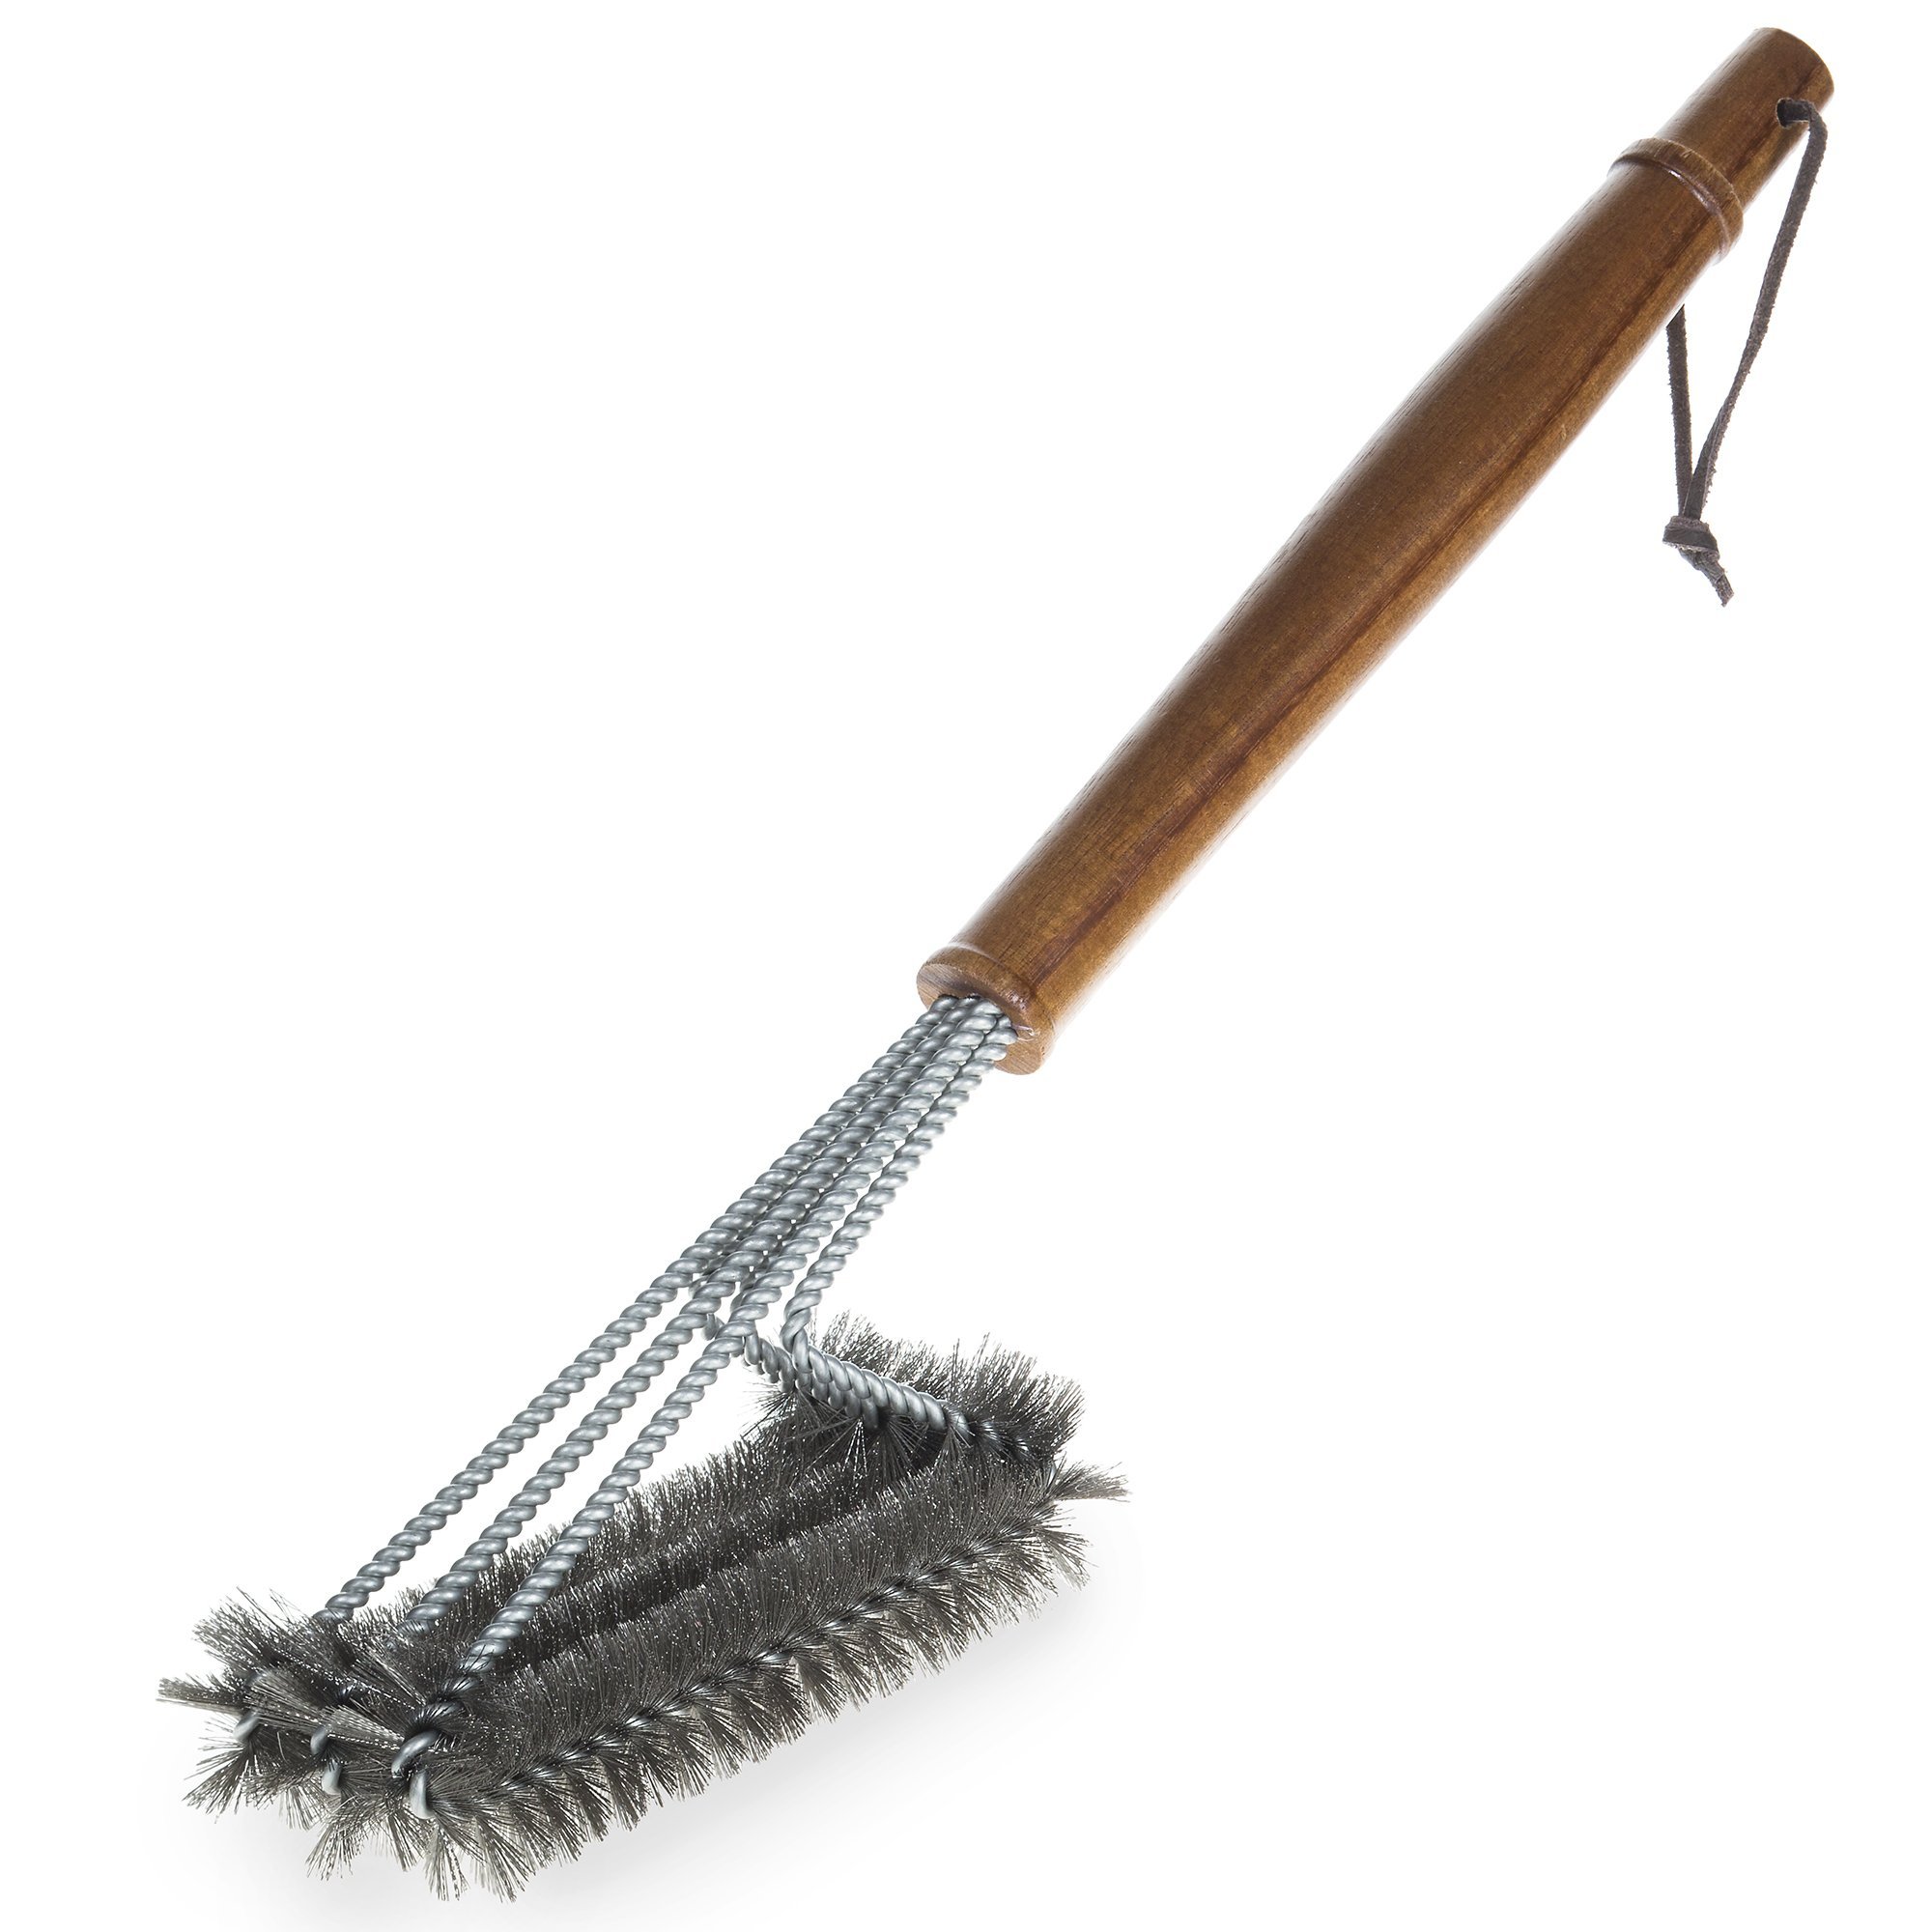 BBQ-Aid Grill Brush – Cleans All Angles, Extended, Large Wooden Handle and Stainless Steel Bristles – No Scratch Cleaning for Any Barbecue or Grill: Char Broil & Ceramic